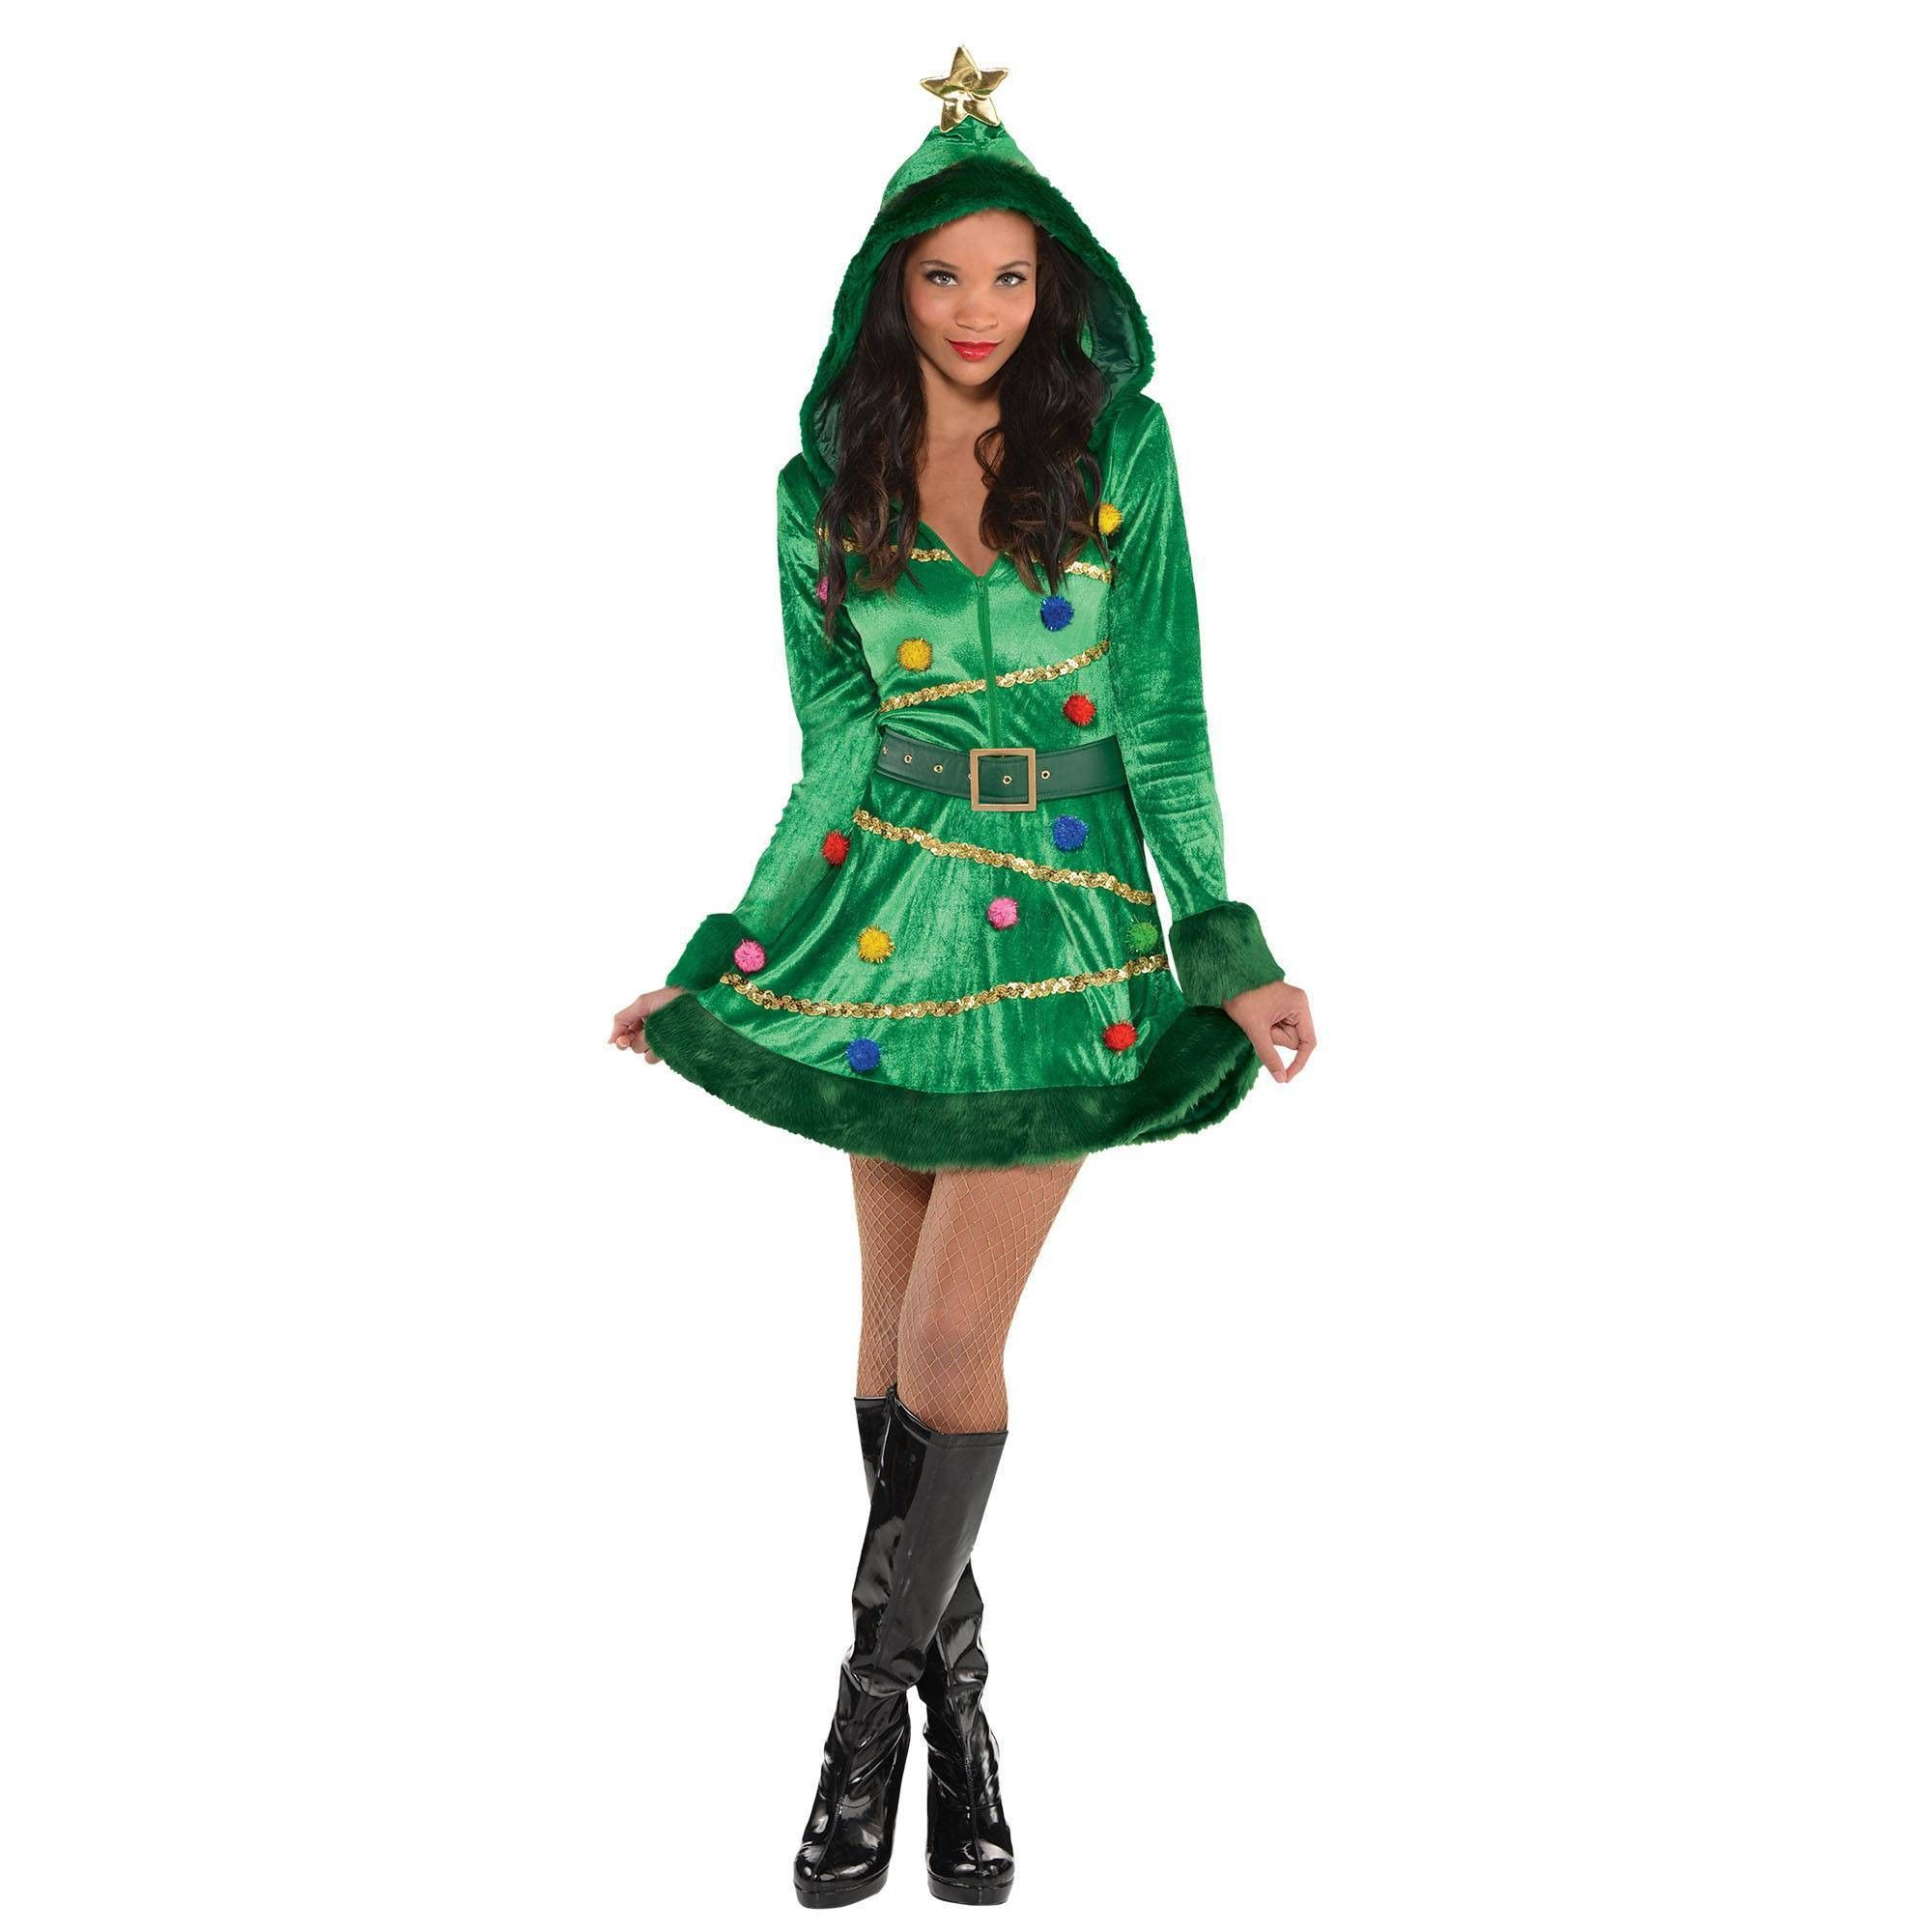 Halloween Christmas Tree Dress Costume S 2 4 Amscan Women S Size Small Multicolored Christmas Tree Costume Christmas Tree Dress Tree Costume